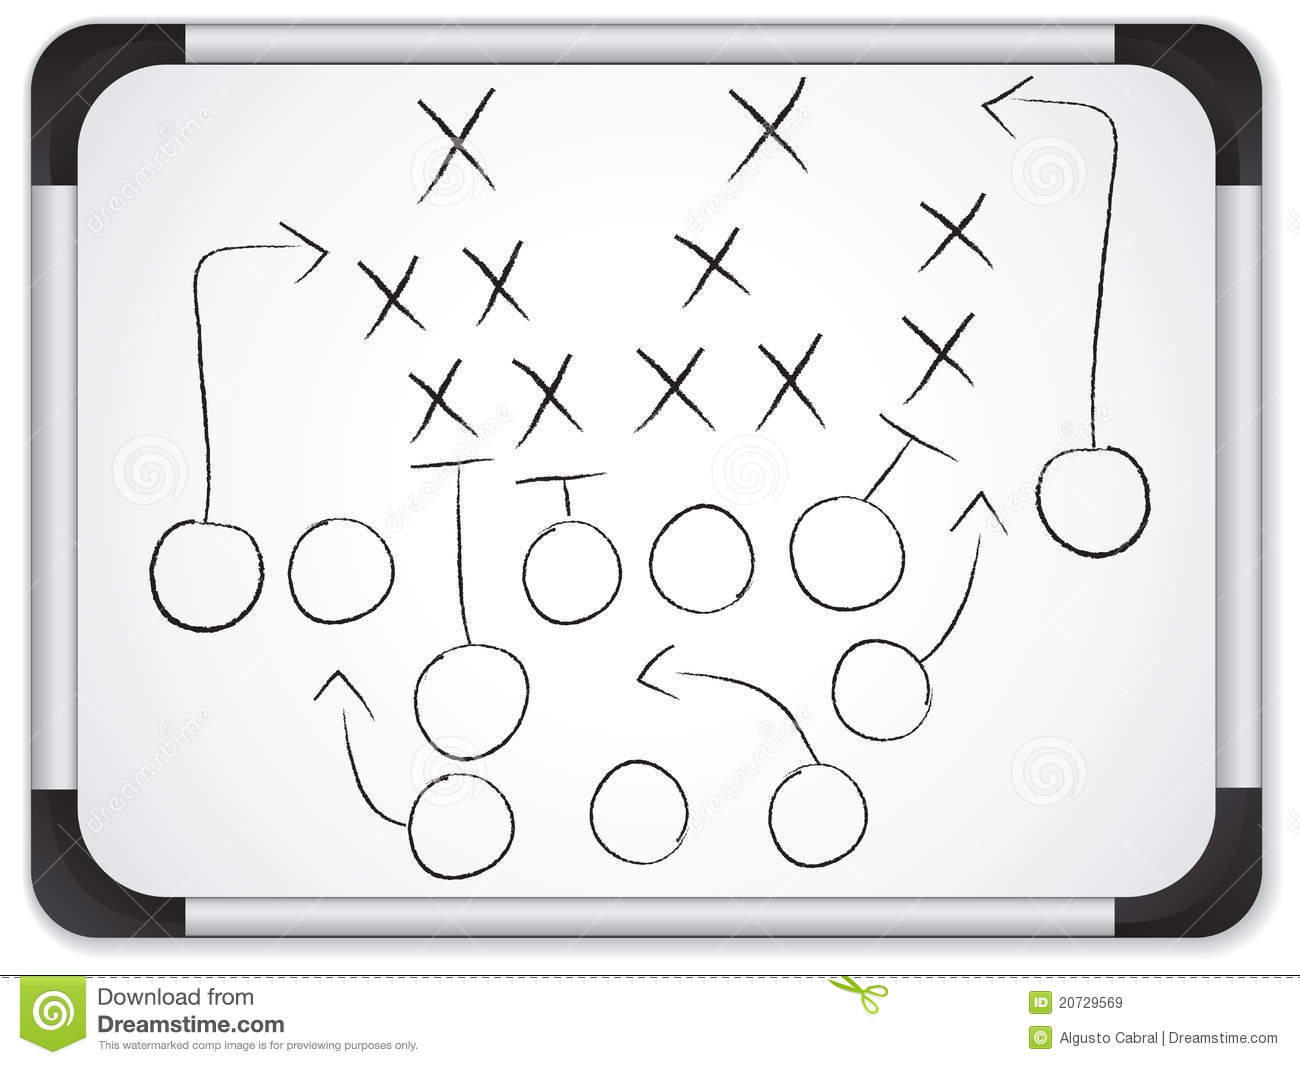 6 2 offense diagram trailer hitches teamwork football game plan on whiteboard royalty free stock images - image: 20729569